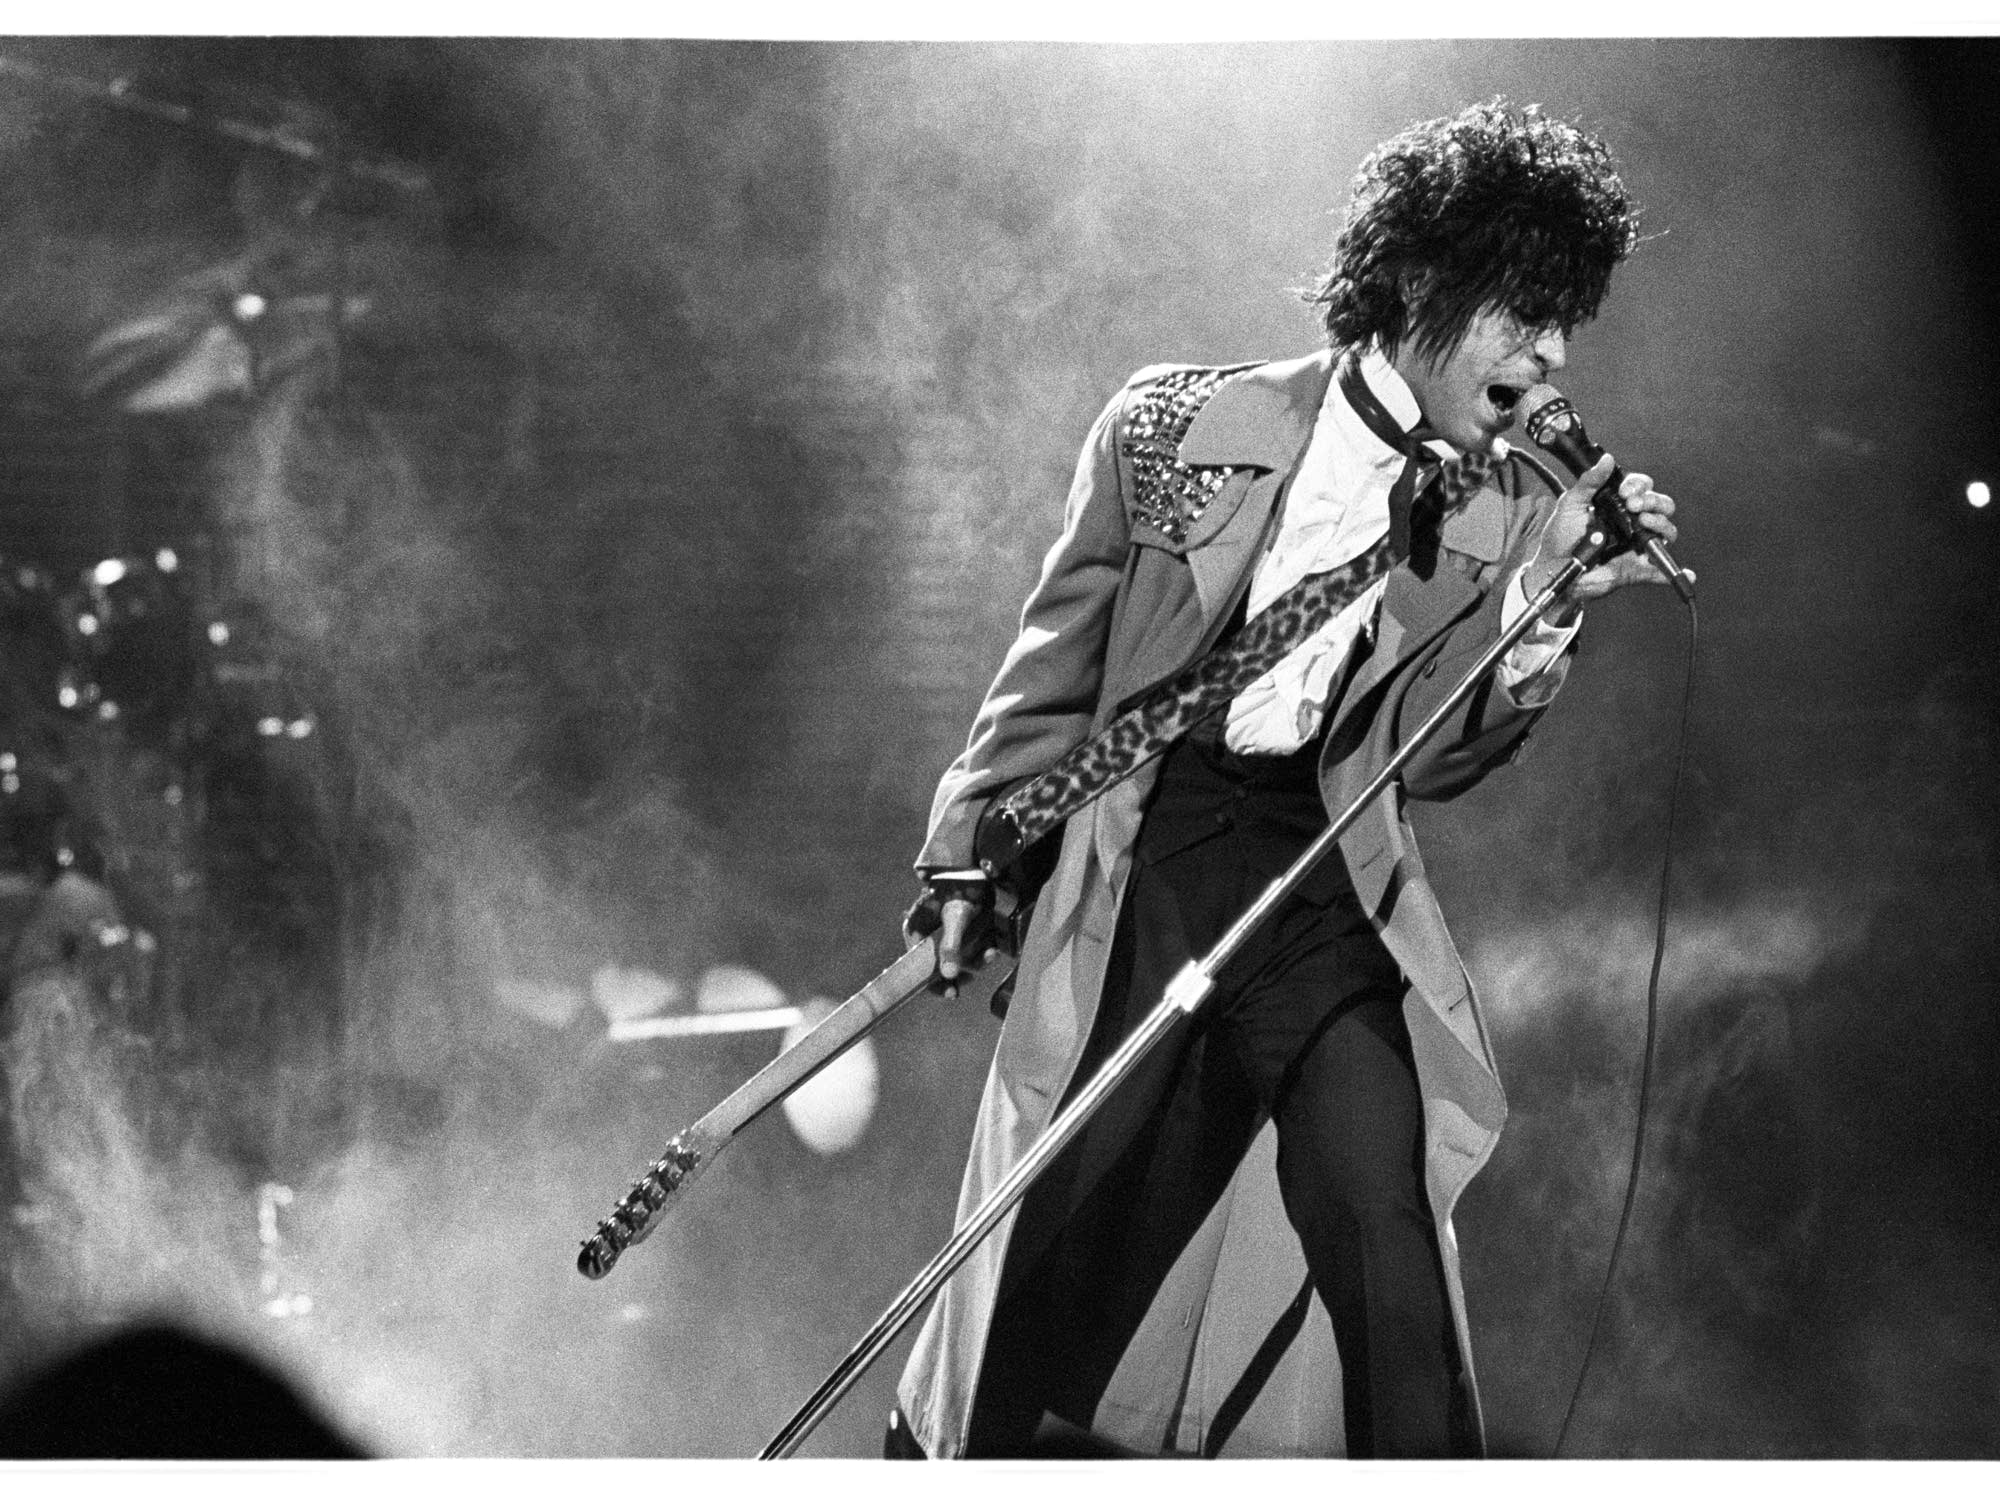 Prince at First Avenue in Minneapolis, undated